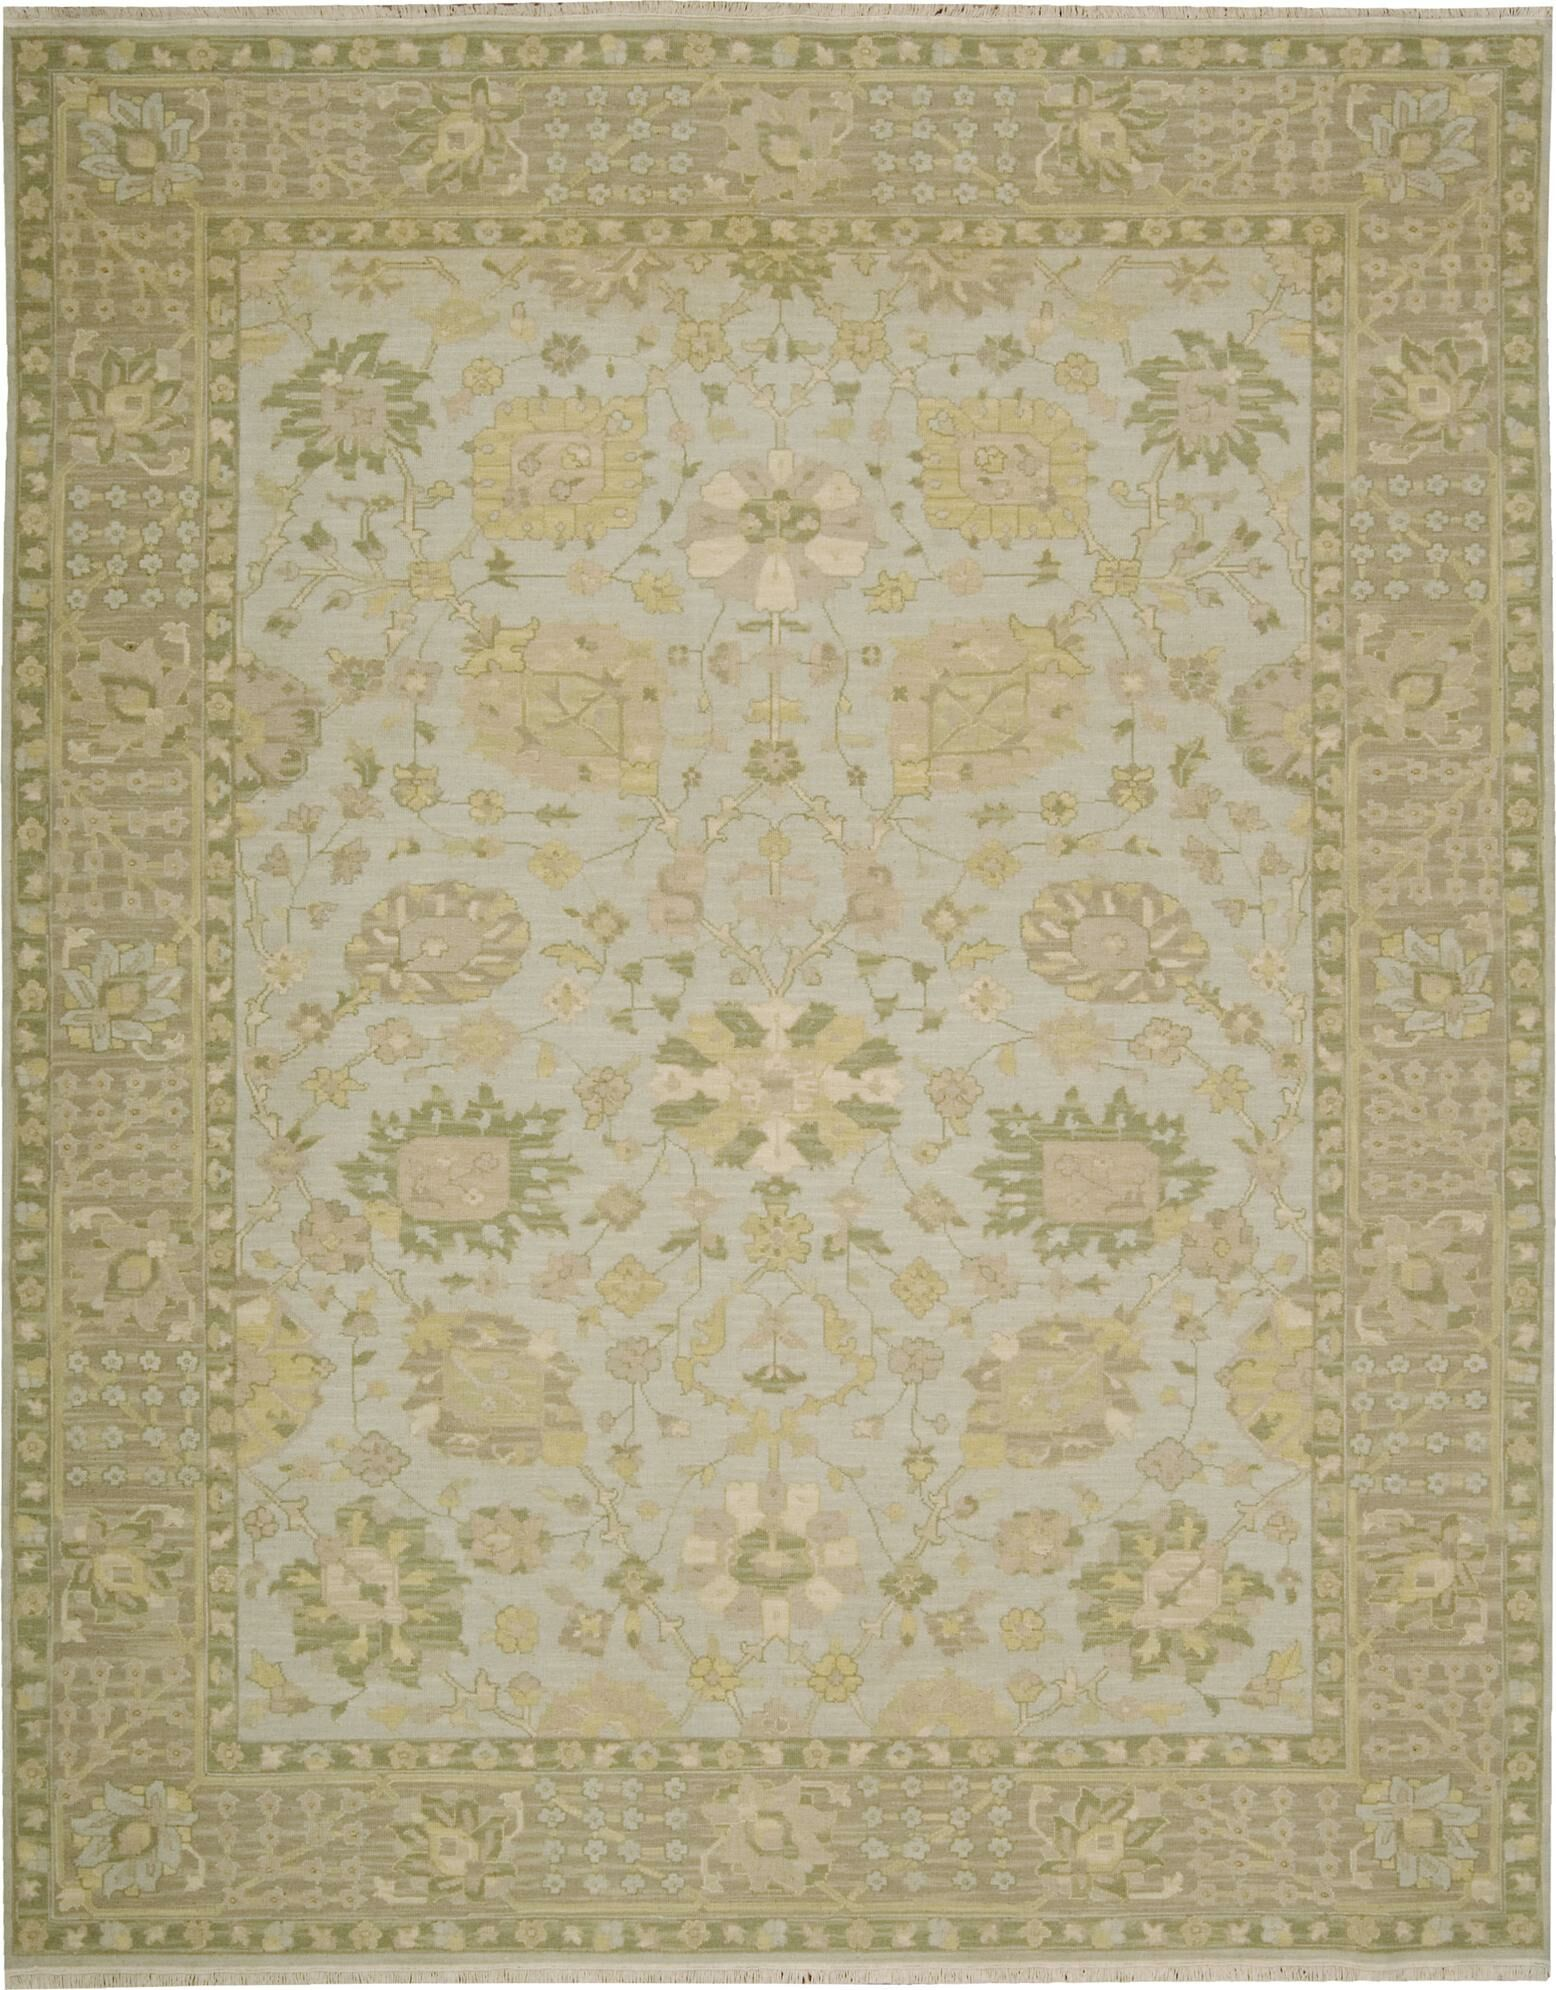 Cullen Hand-Woven Mist Area Rug Rug Size: Rectangle 3'10